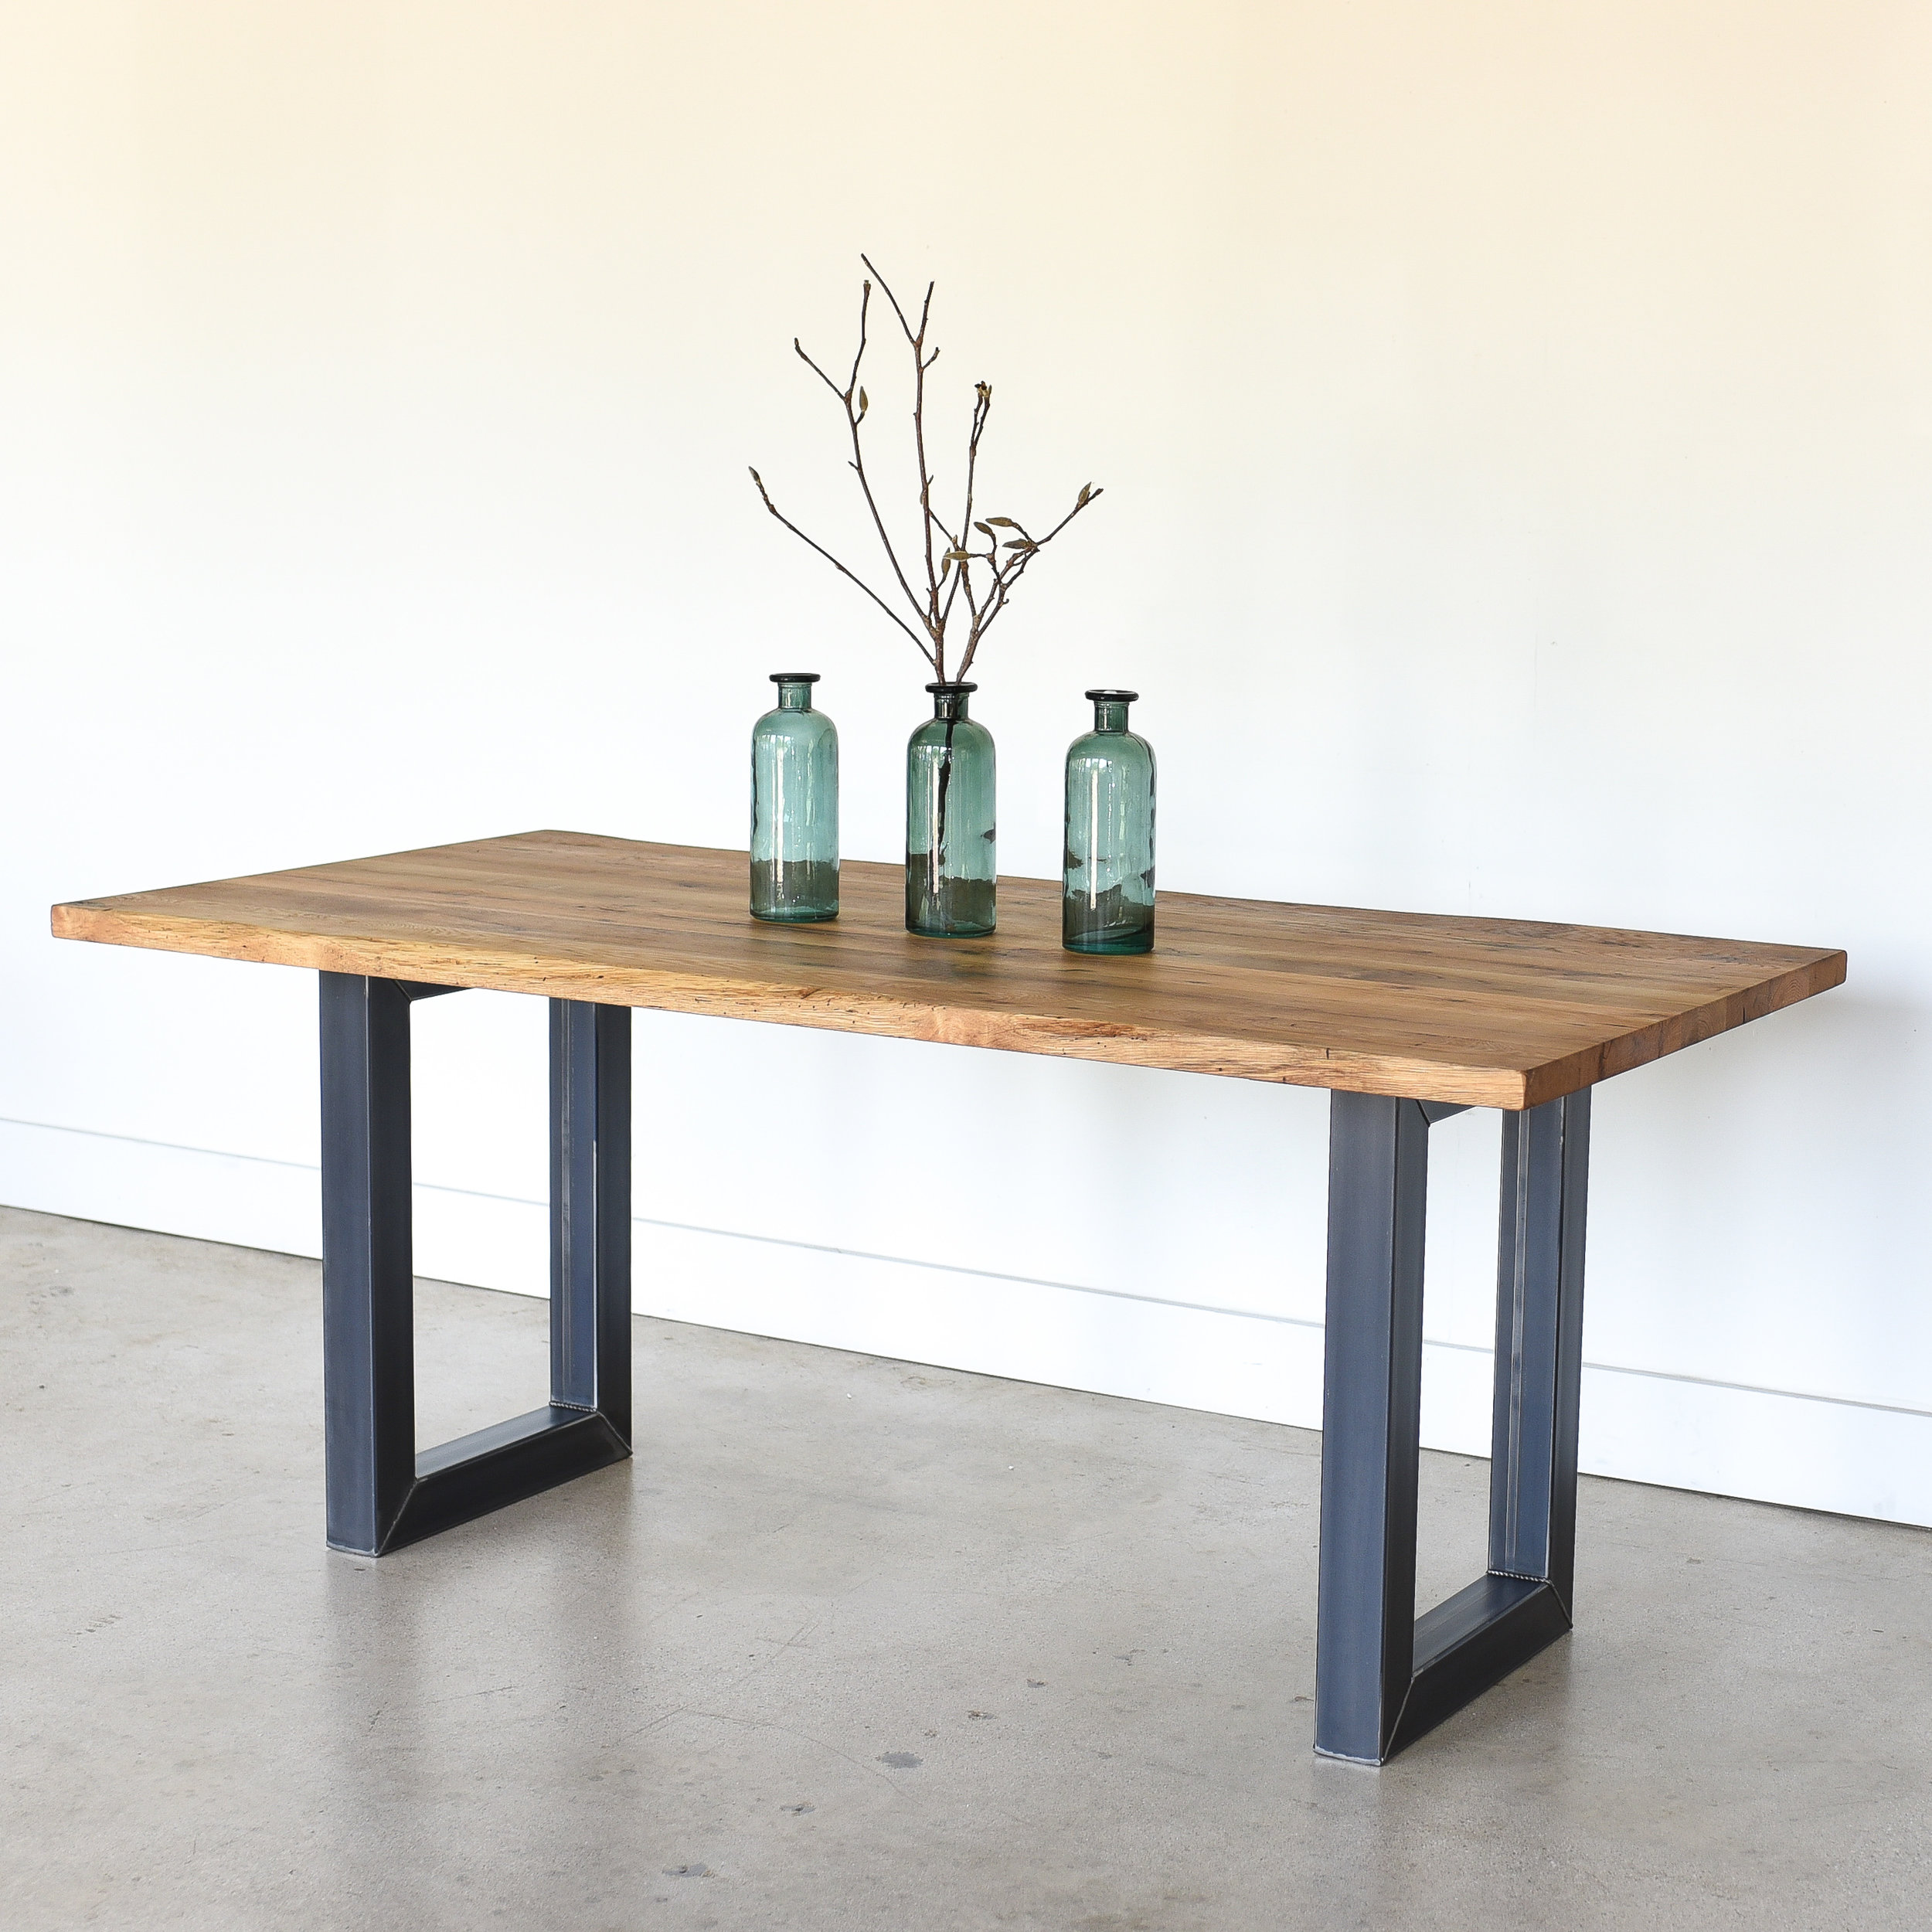 Reclaimed Live Edge Dining Table 3 X 3 Rectangle Metal Legs